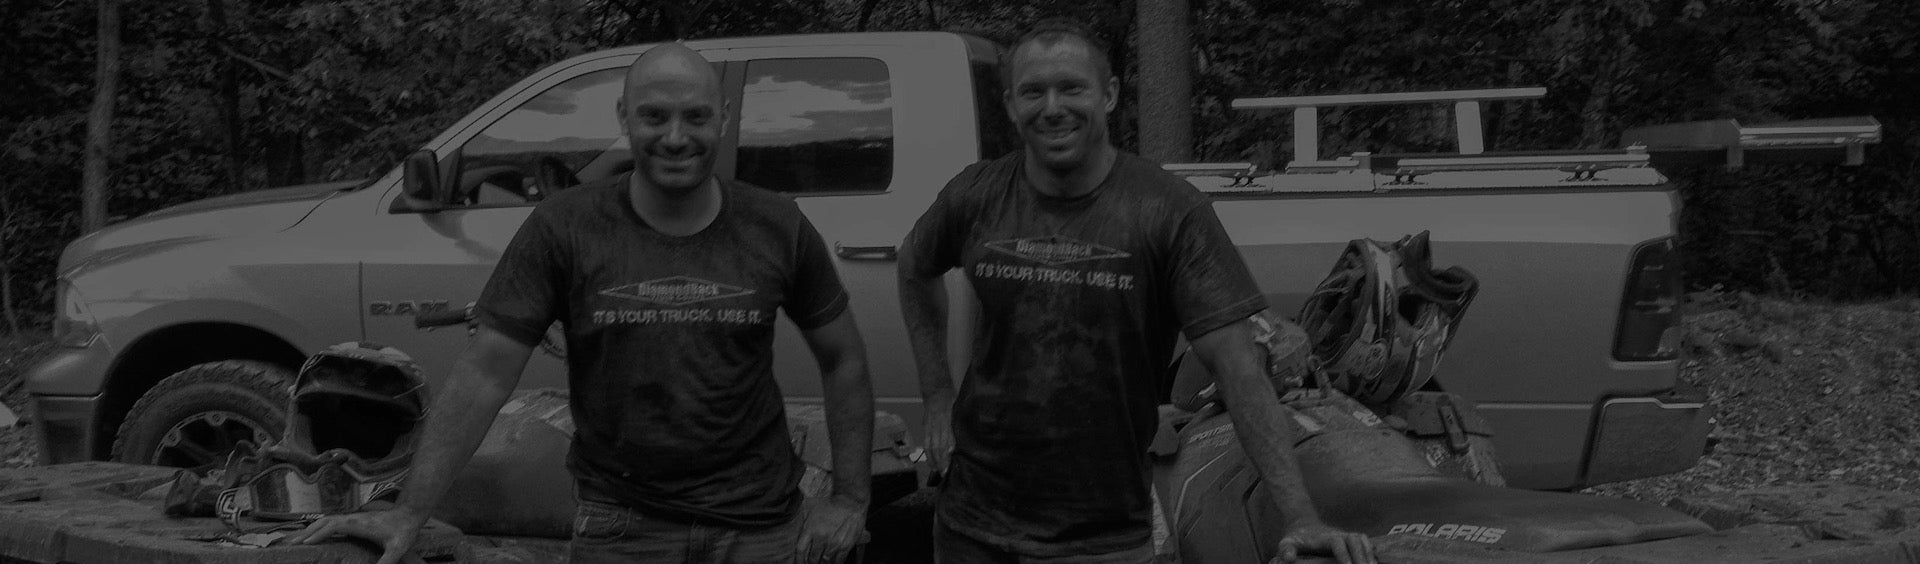 DiamondBack Truck Covers founders Ethan Wendle and Matt Chverchko